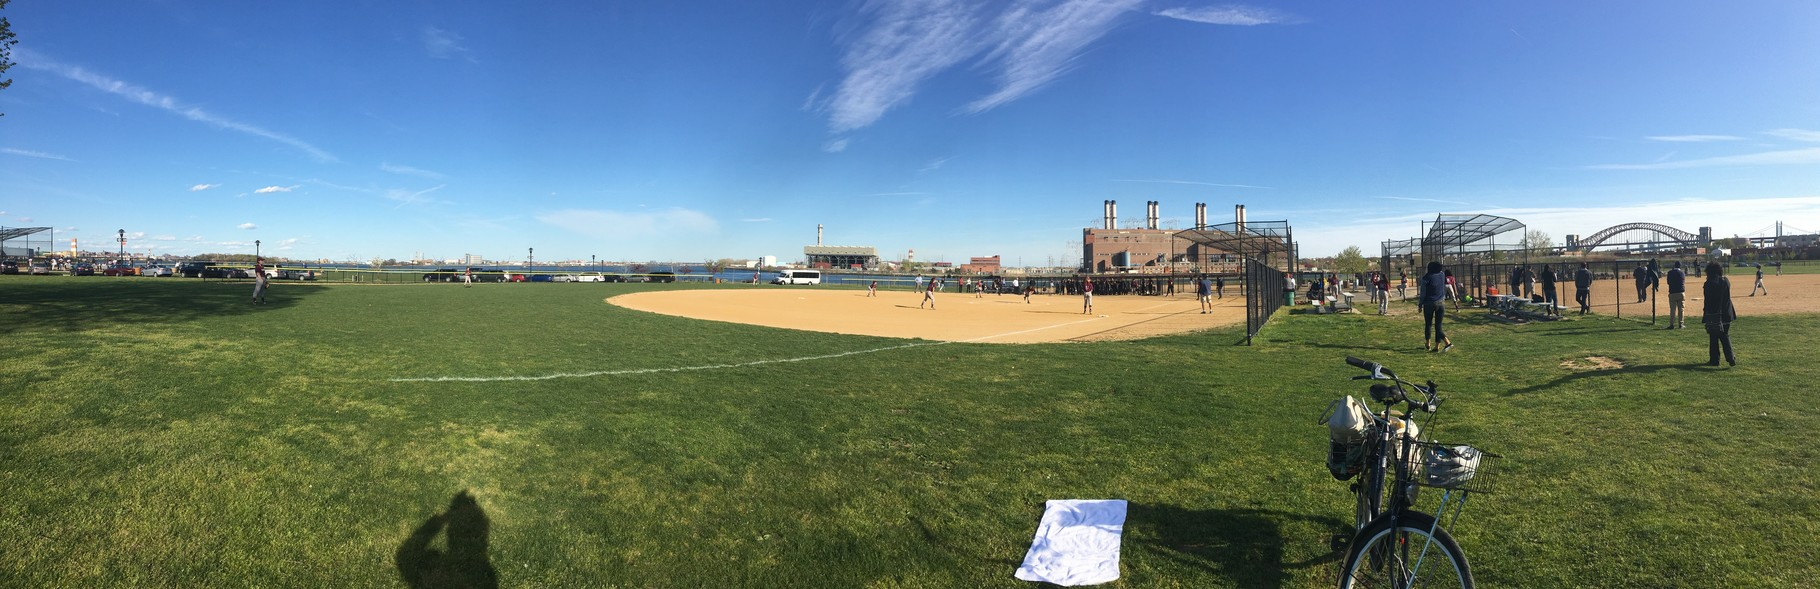 Softball game at Randall's Island, April 19, 2016